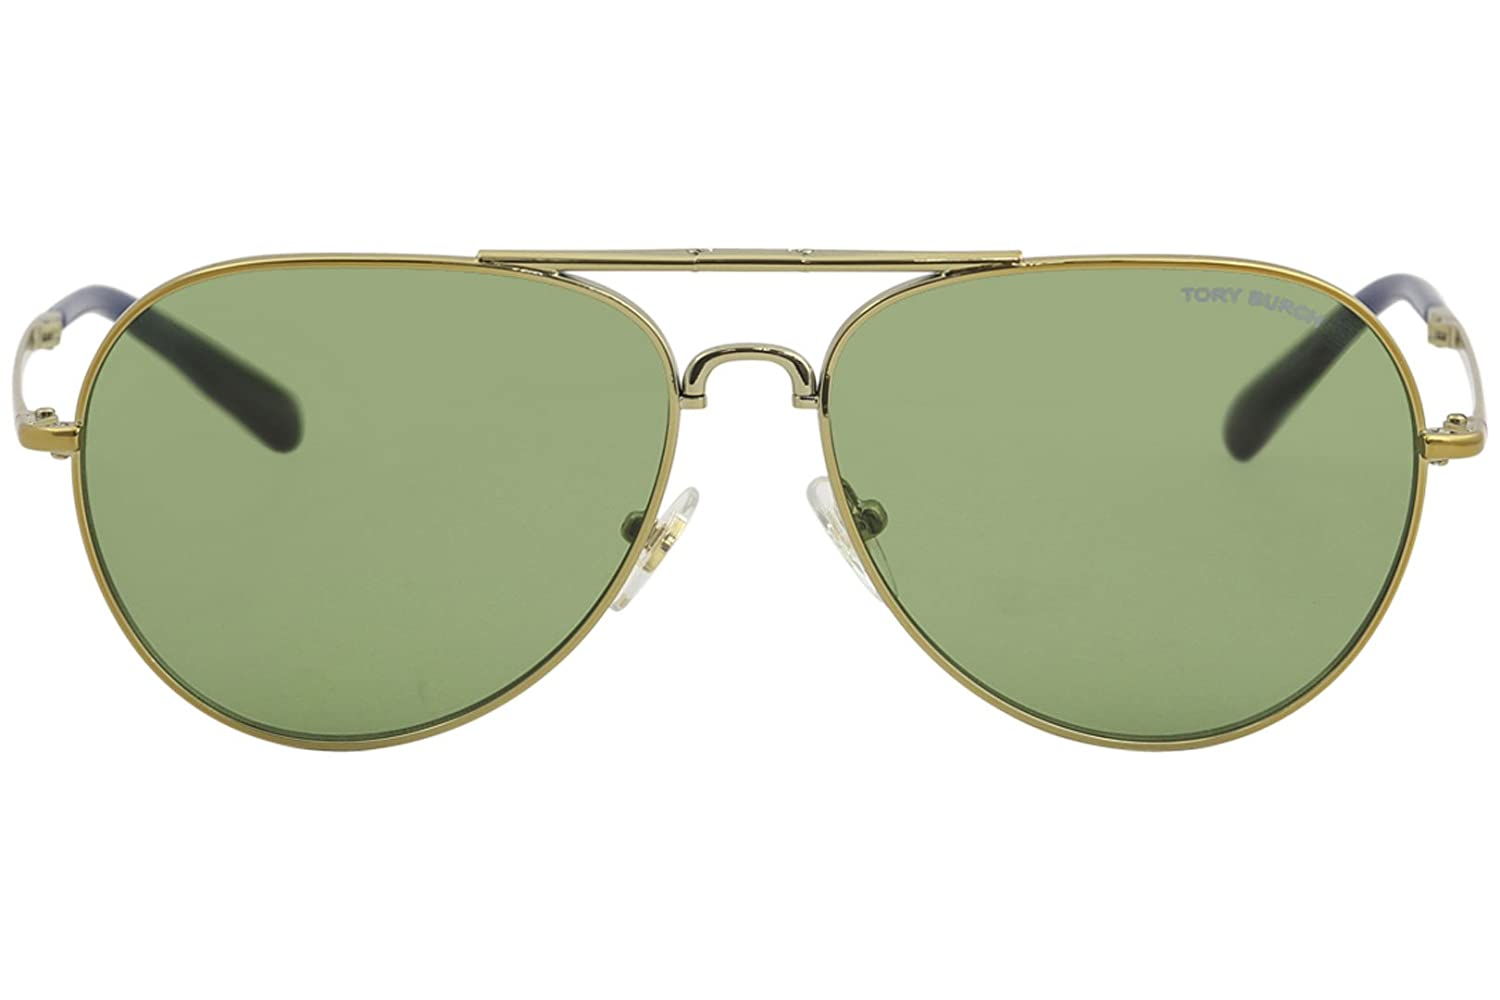 d3831f0c4ee7 Tory Burch Women's TY6054 Sunglasses 58mm at Amazon Women's Clothing store: